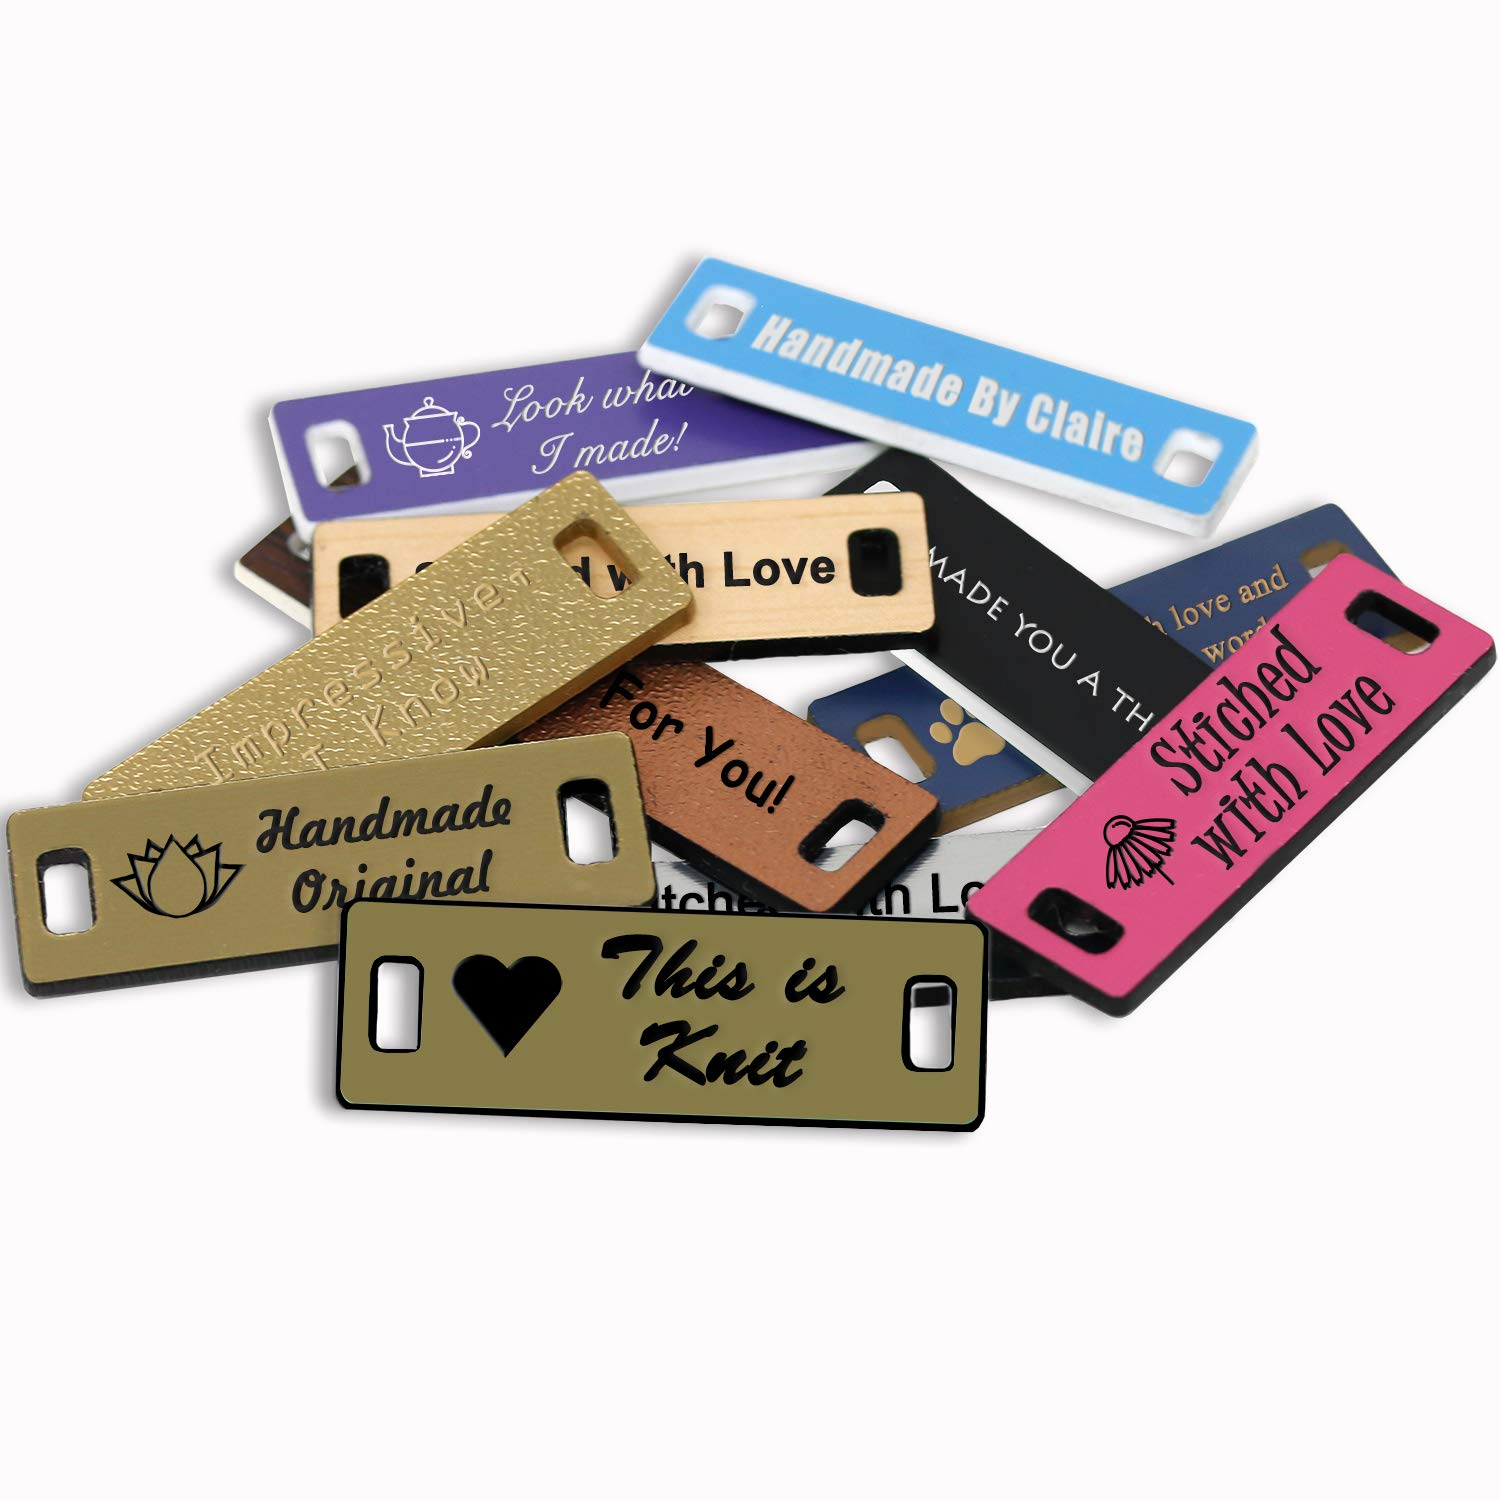 LHS Engraving | Personalized Handmade Tags Custom Engraved Brushed Brass Plastic Sewing & Knitting Notions Black Lettering USA - M6 by LHS Engraving (Image #1)